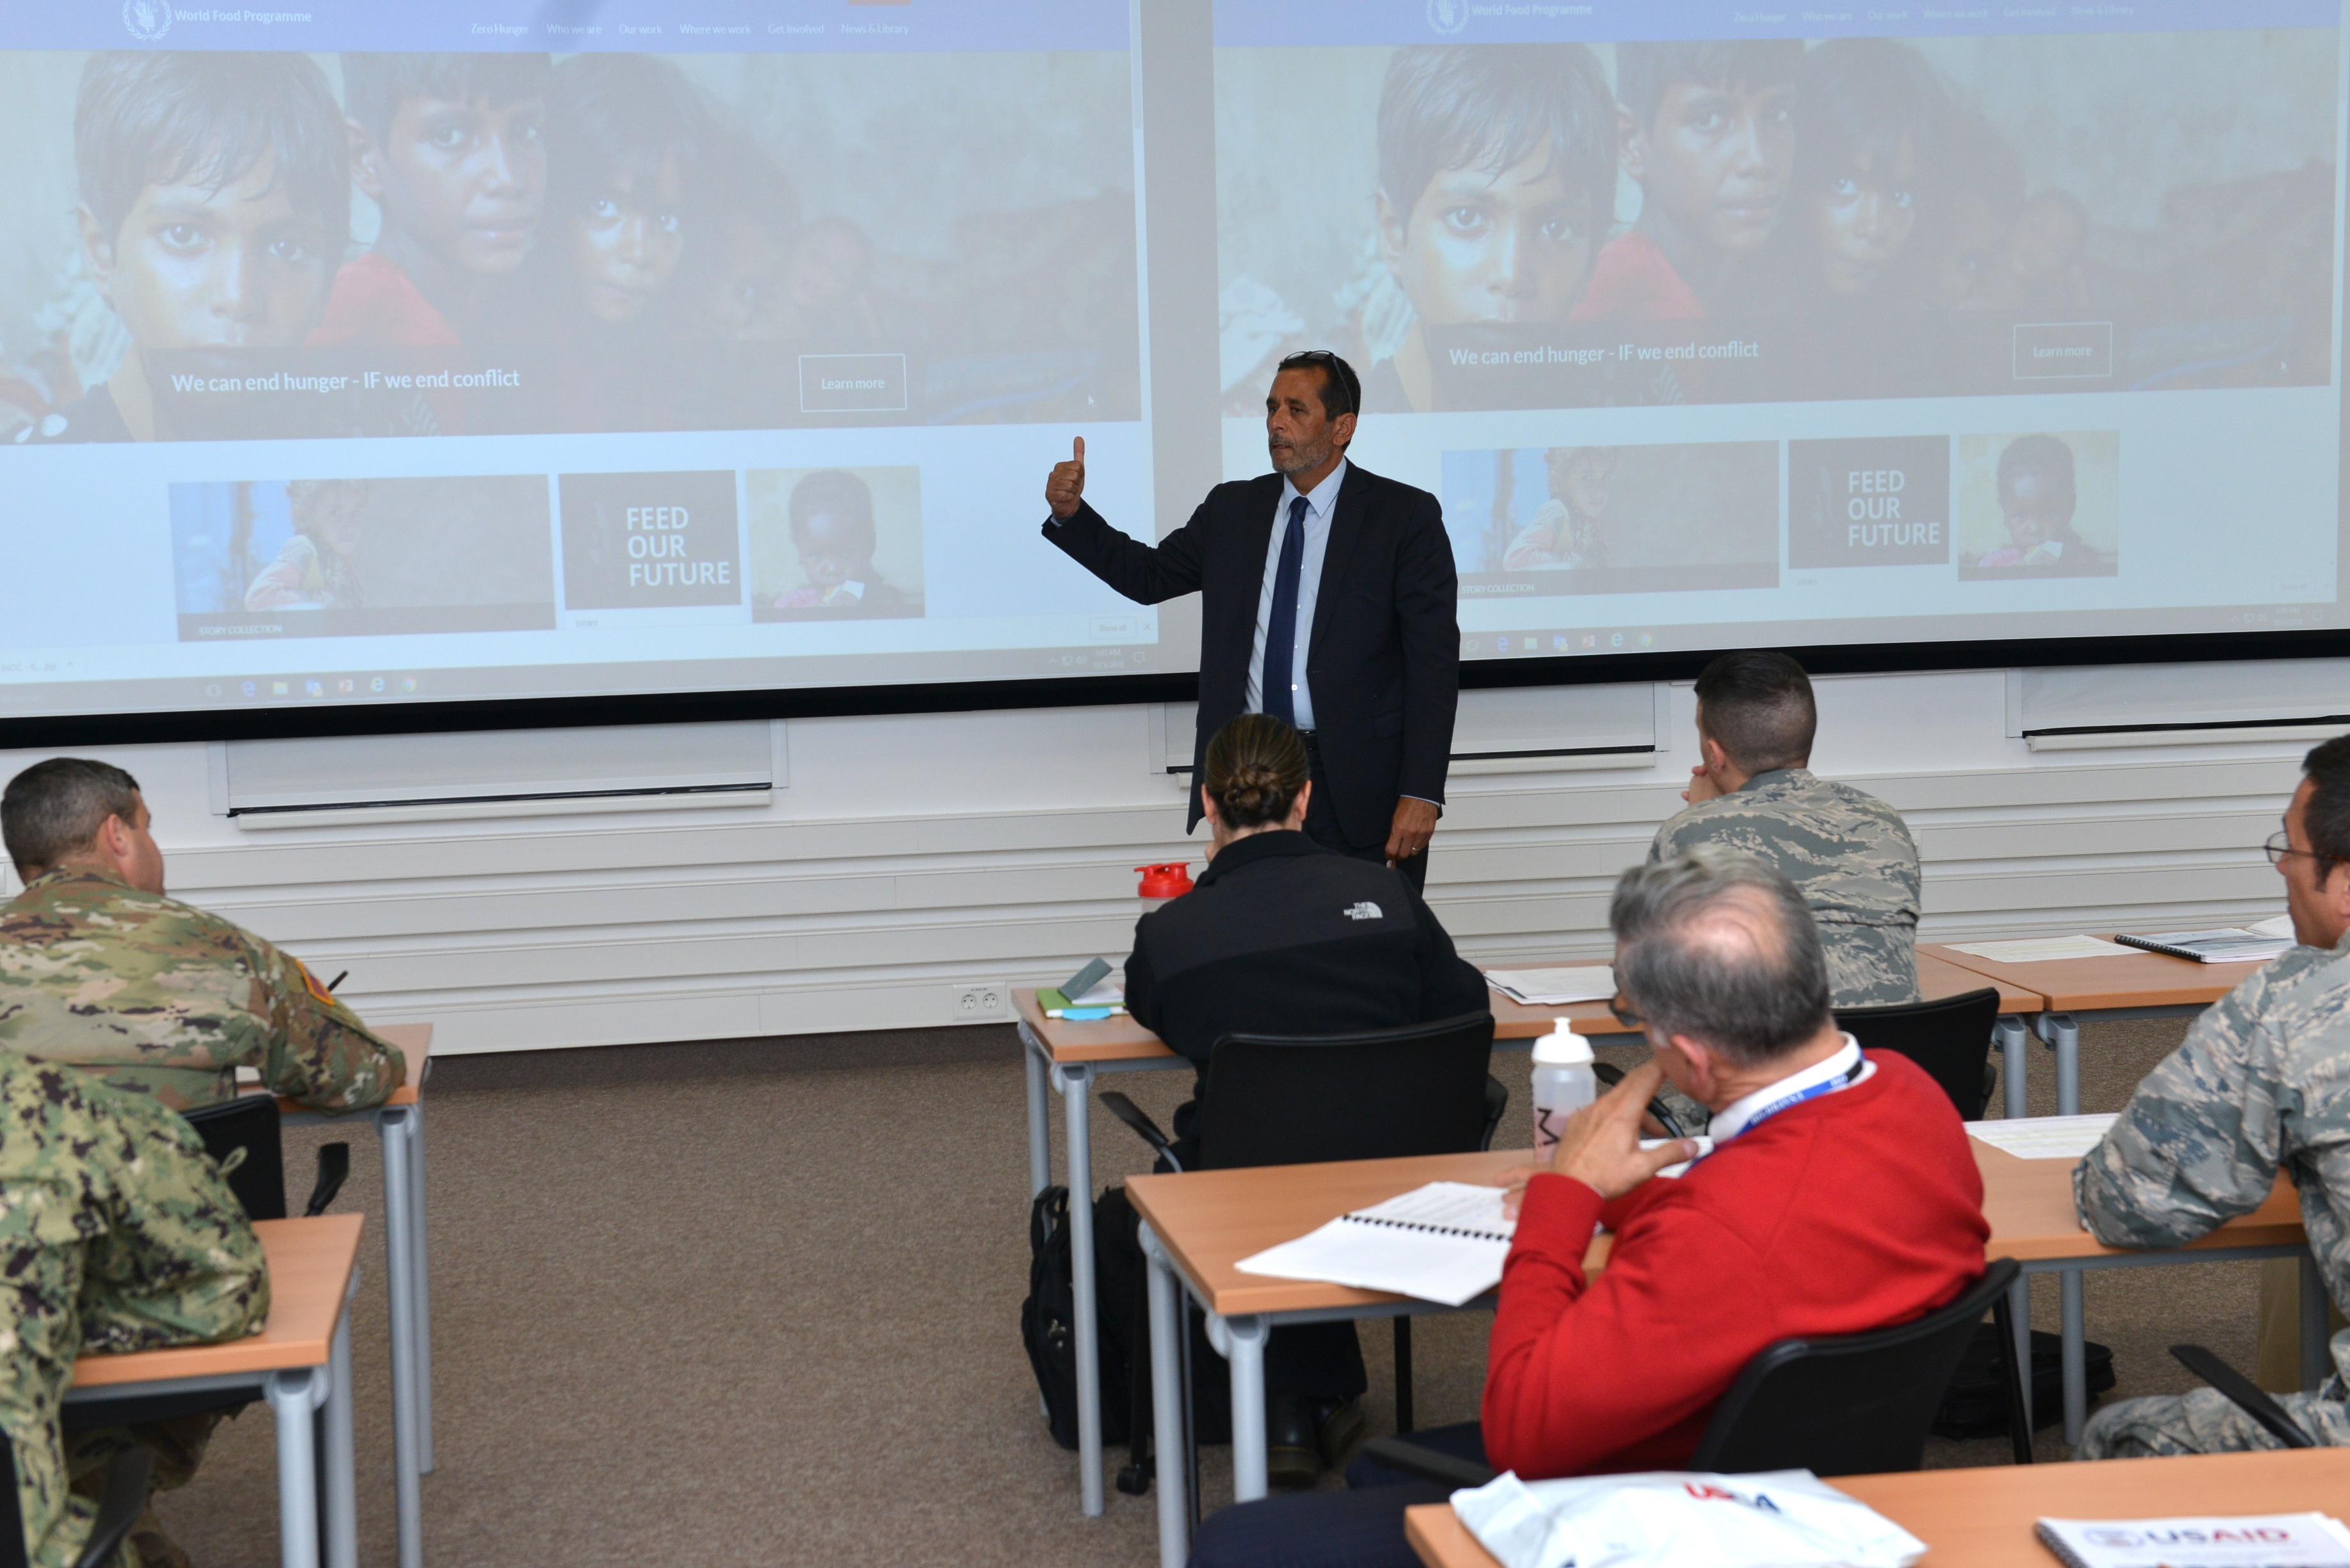 Amer Daoudi, Senior Director, Operations Services, U.N. World Food Program, U.N. World Food Program, addresses attendees of the Joint Humanitarian Operations Course, Oct. 4, 2018, at the U.S. Africa Command Special Events Center.